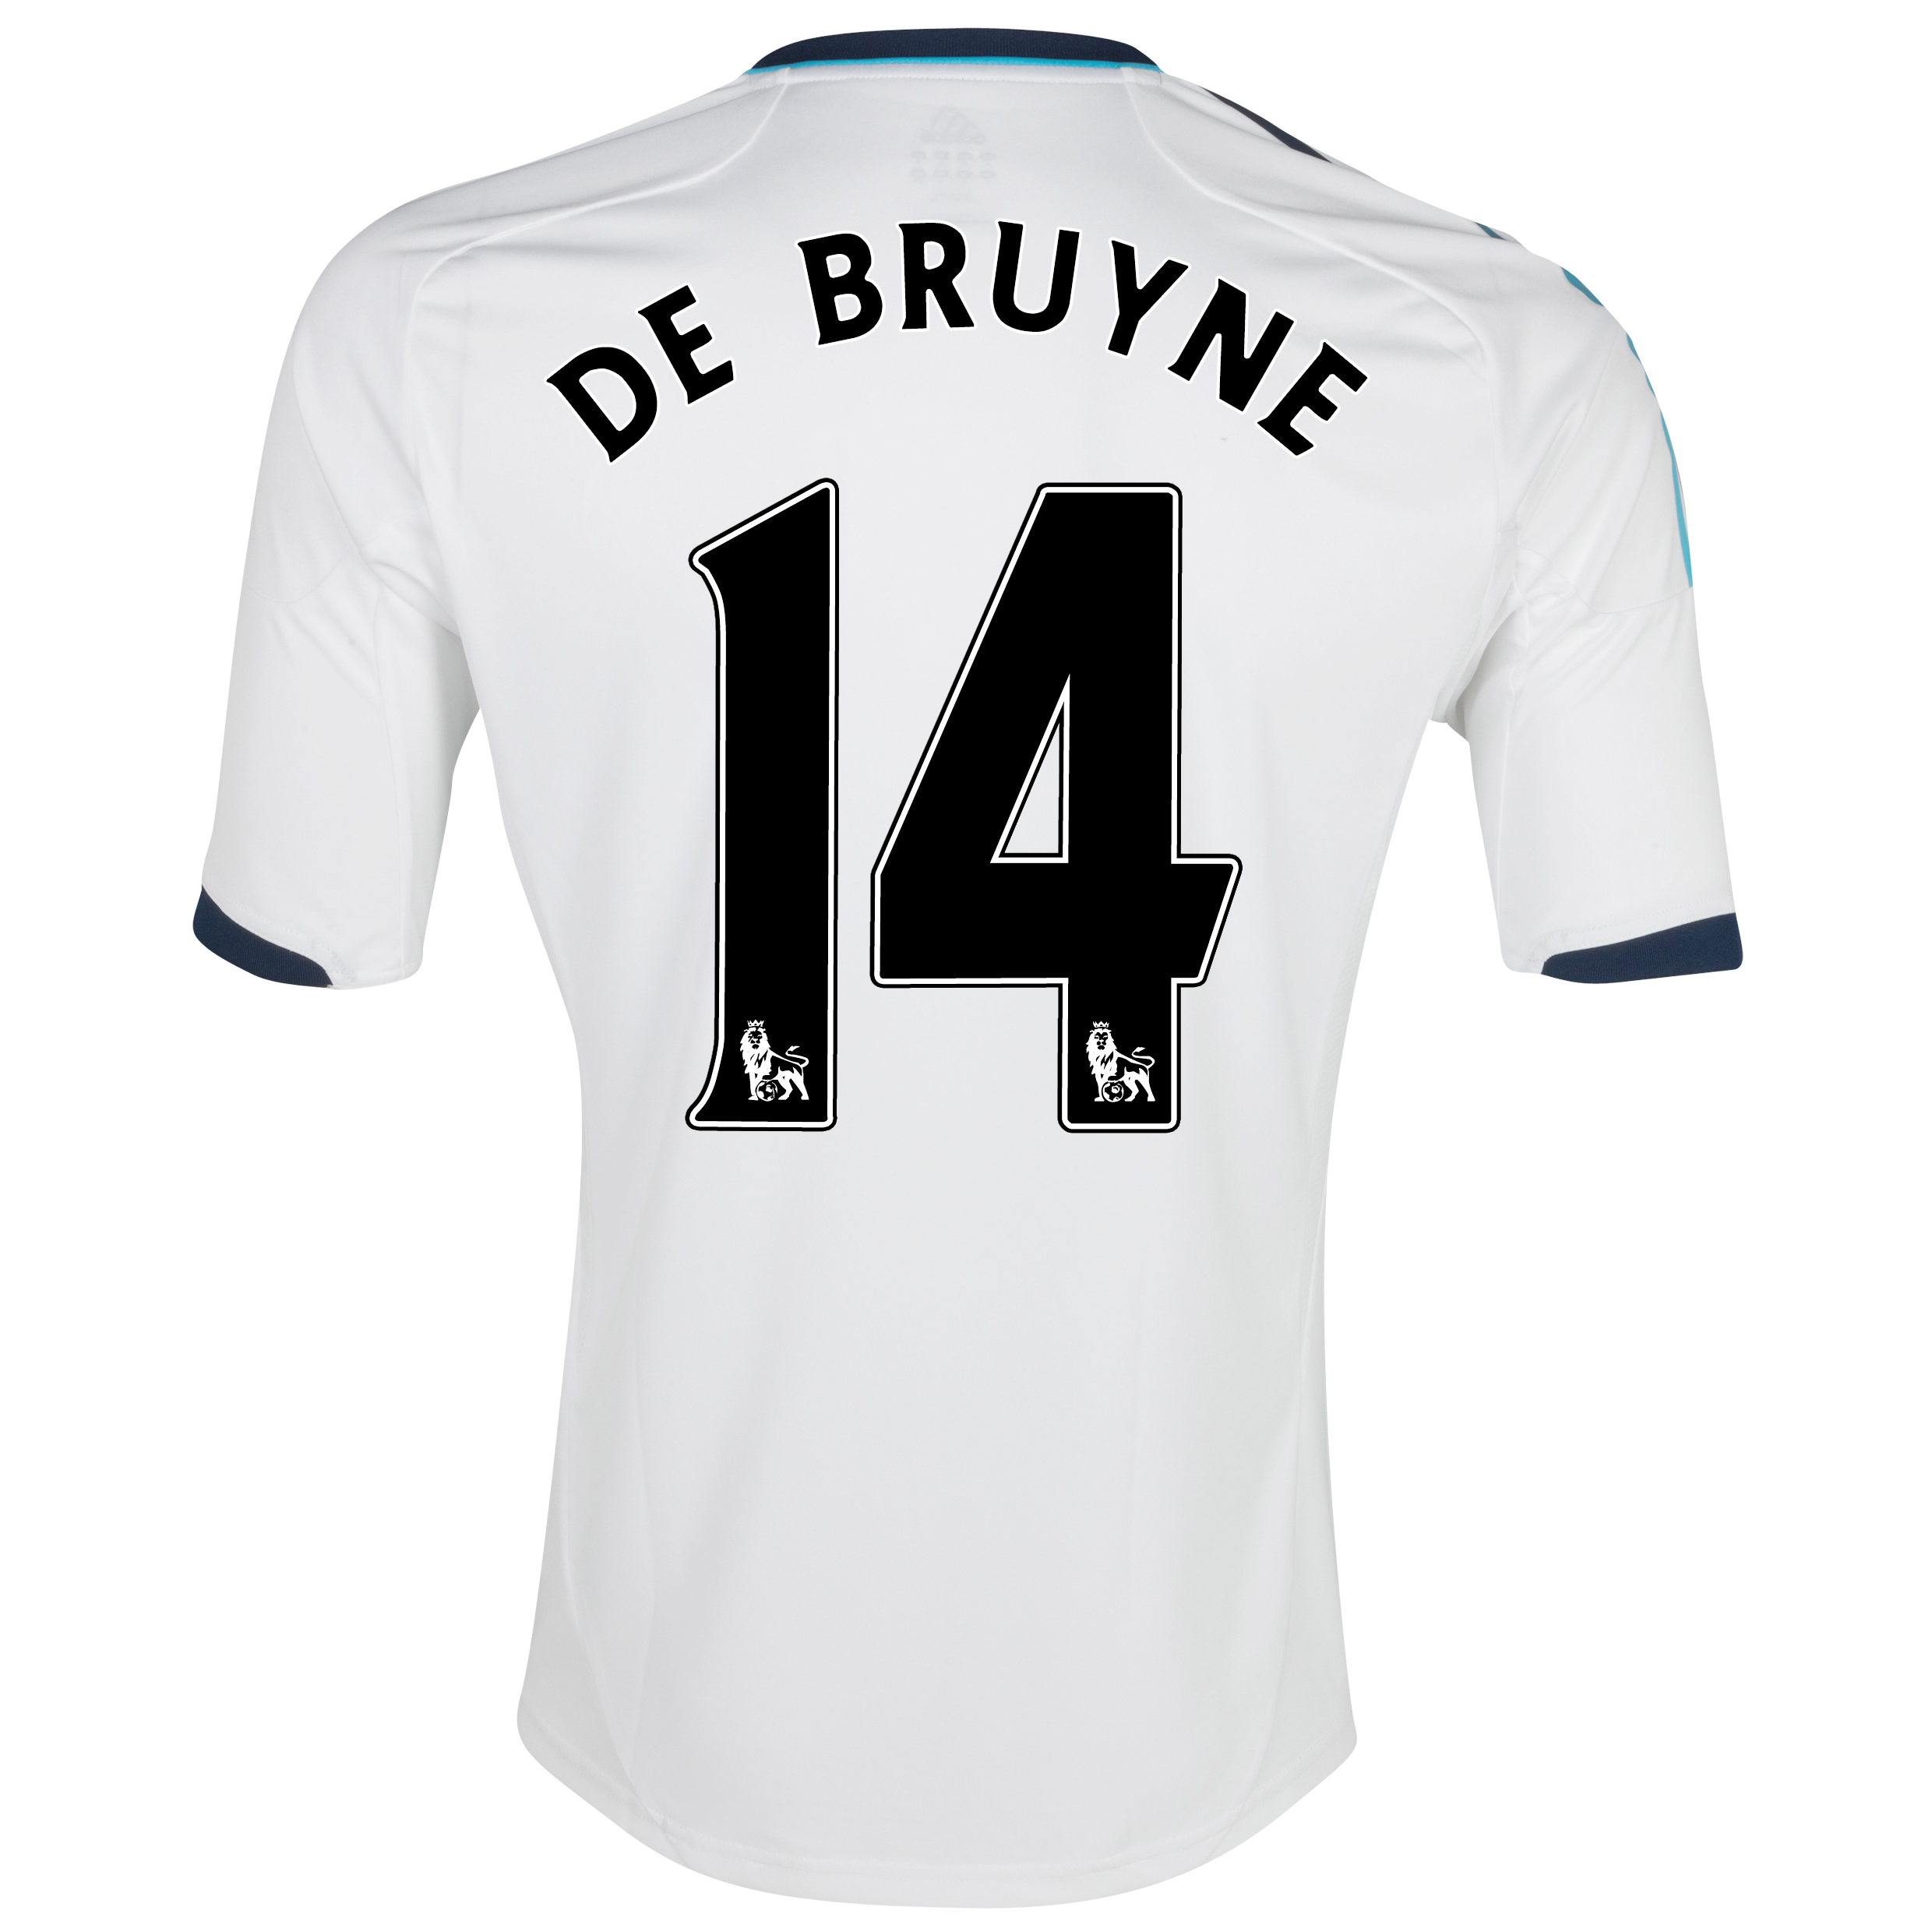 Chelsea Away Shirt 2012/13 - Youths with De Bruyne 14 printing